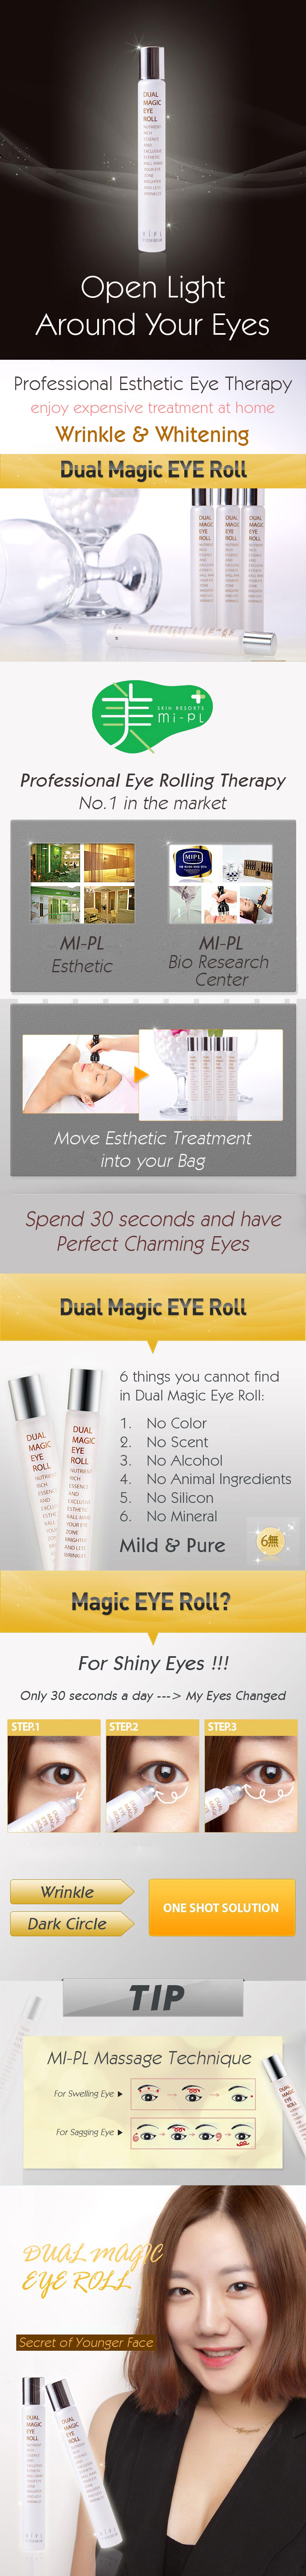 MI-PL Dual Magic Eye Roll